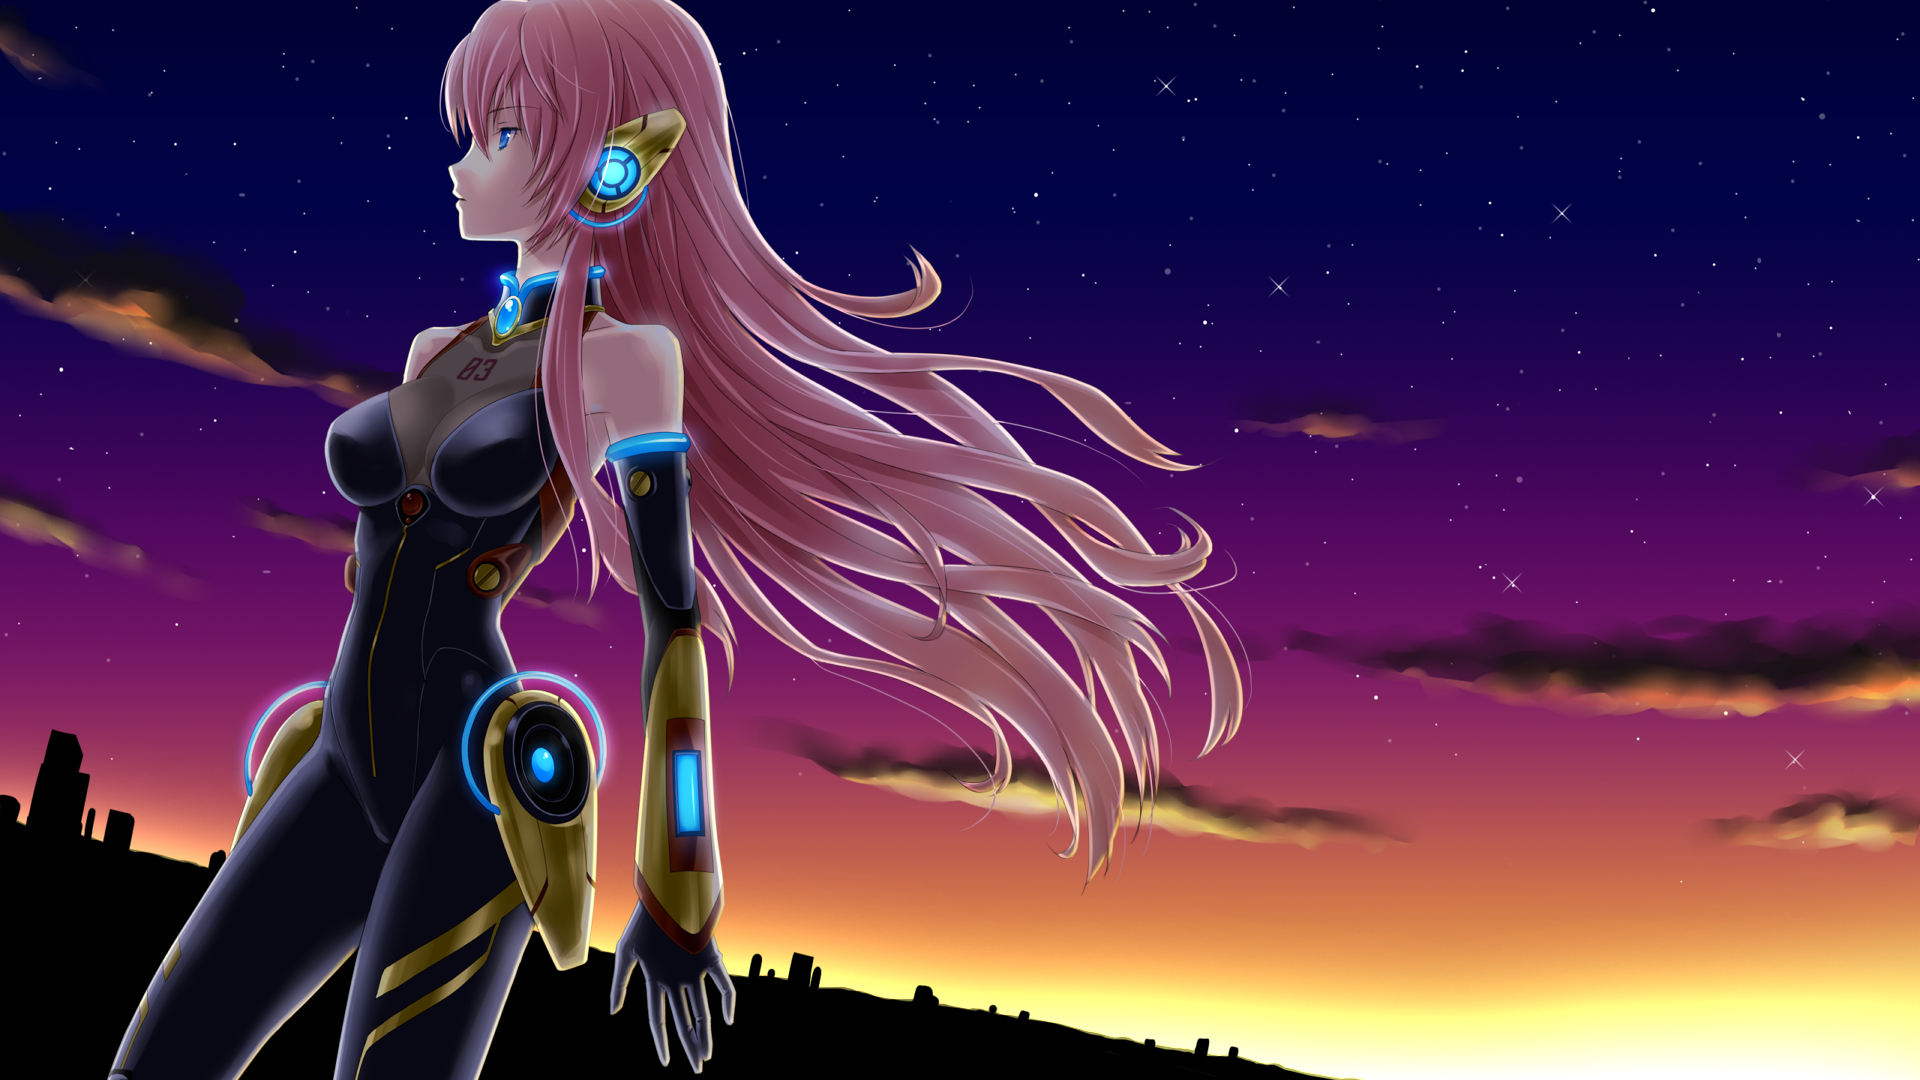 megurine luka vocaloid blue HD Wallpaper